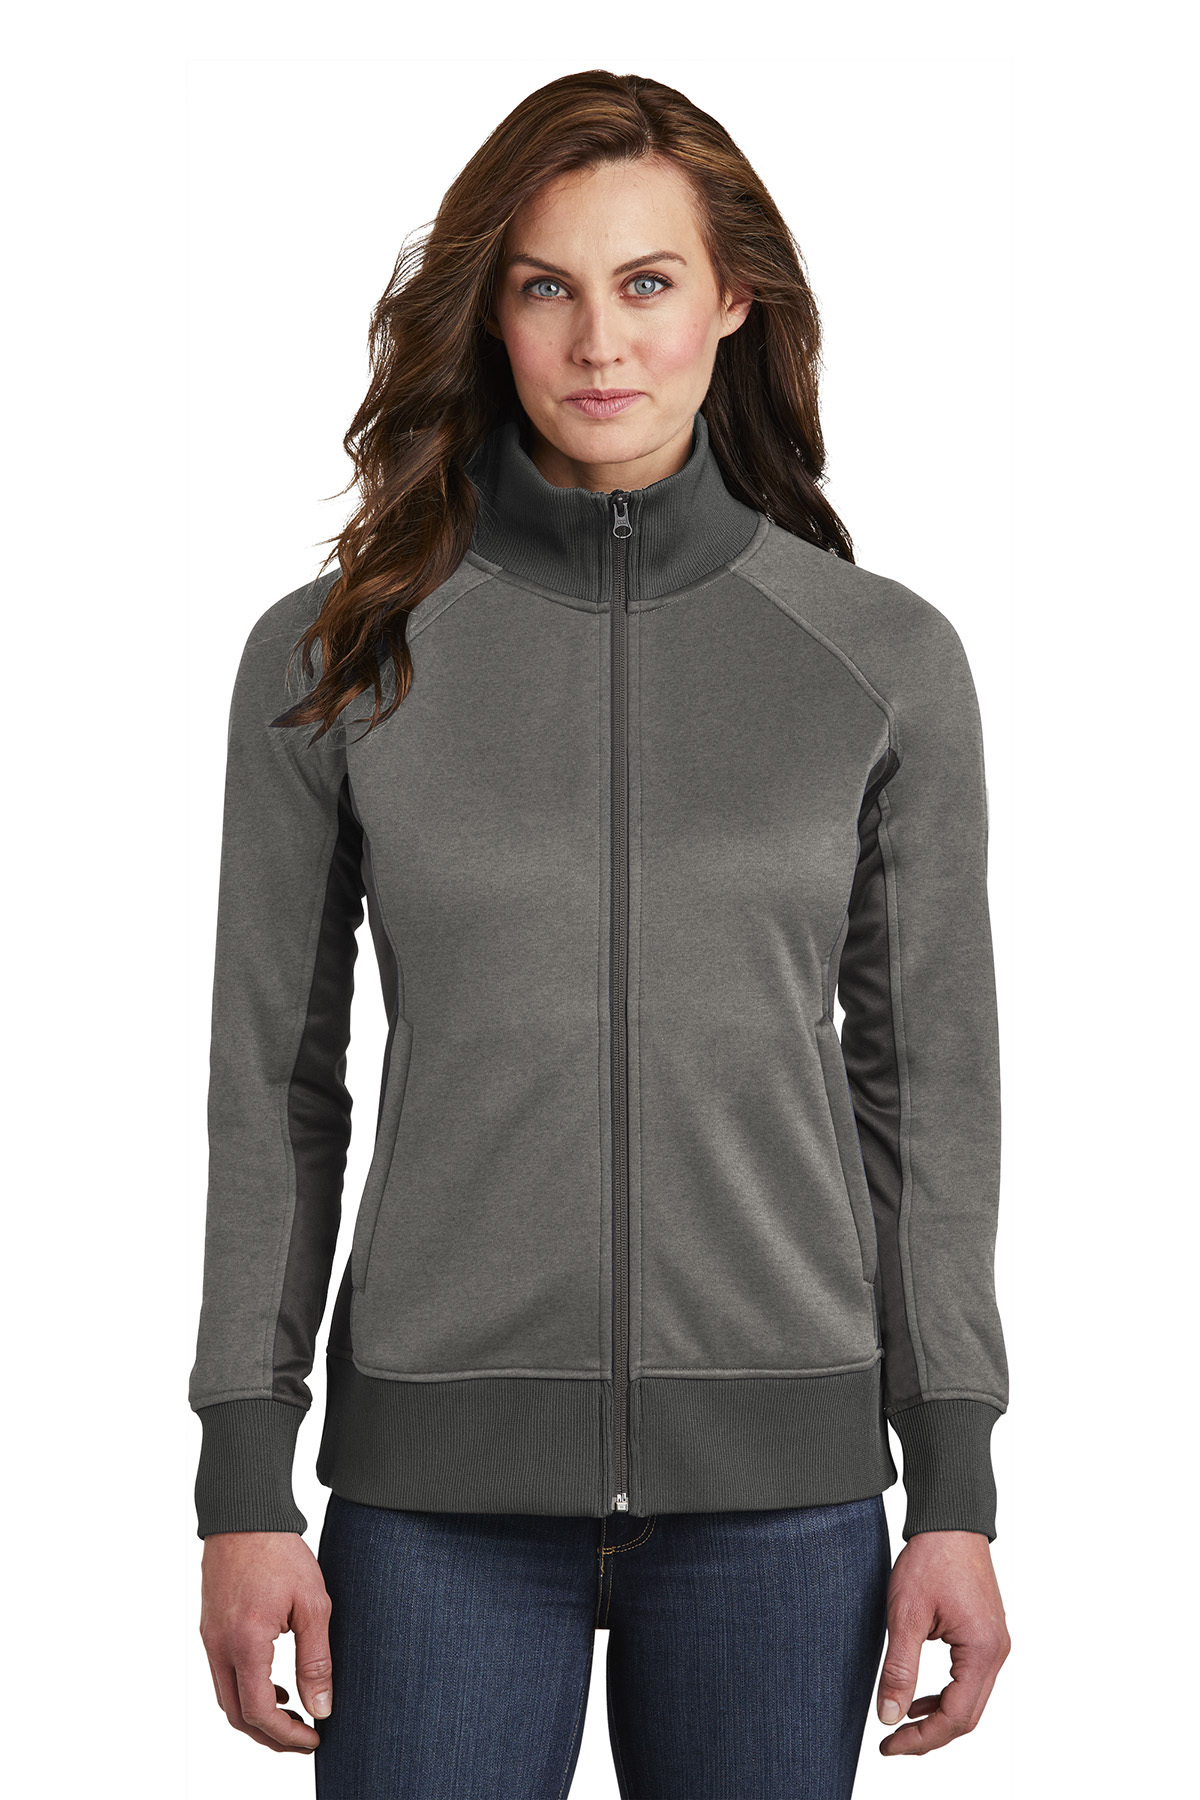 The North Face NF0A3SEV - Ladies Tech Full-Zip Fleece Jacket